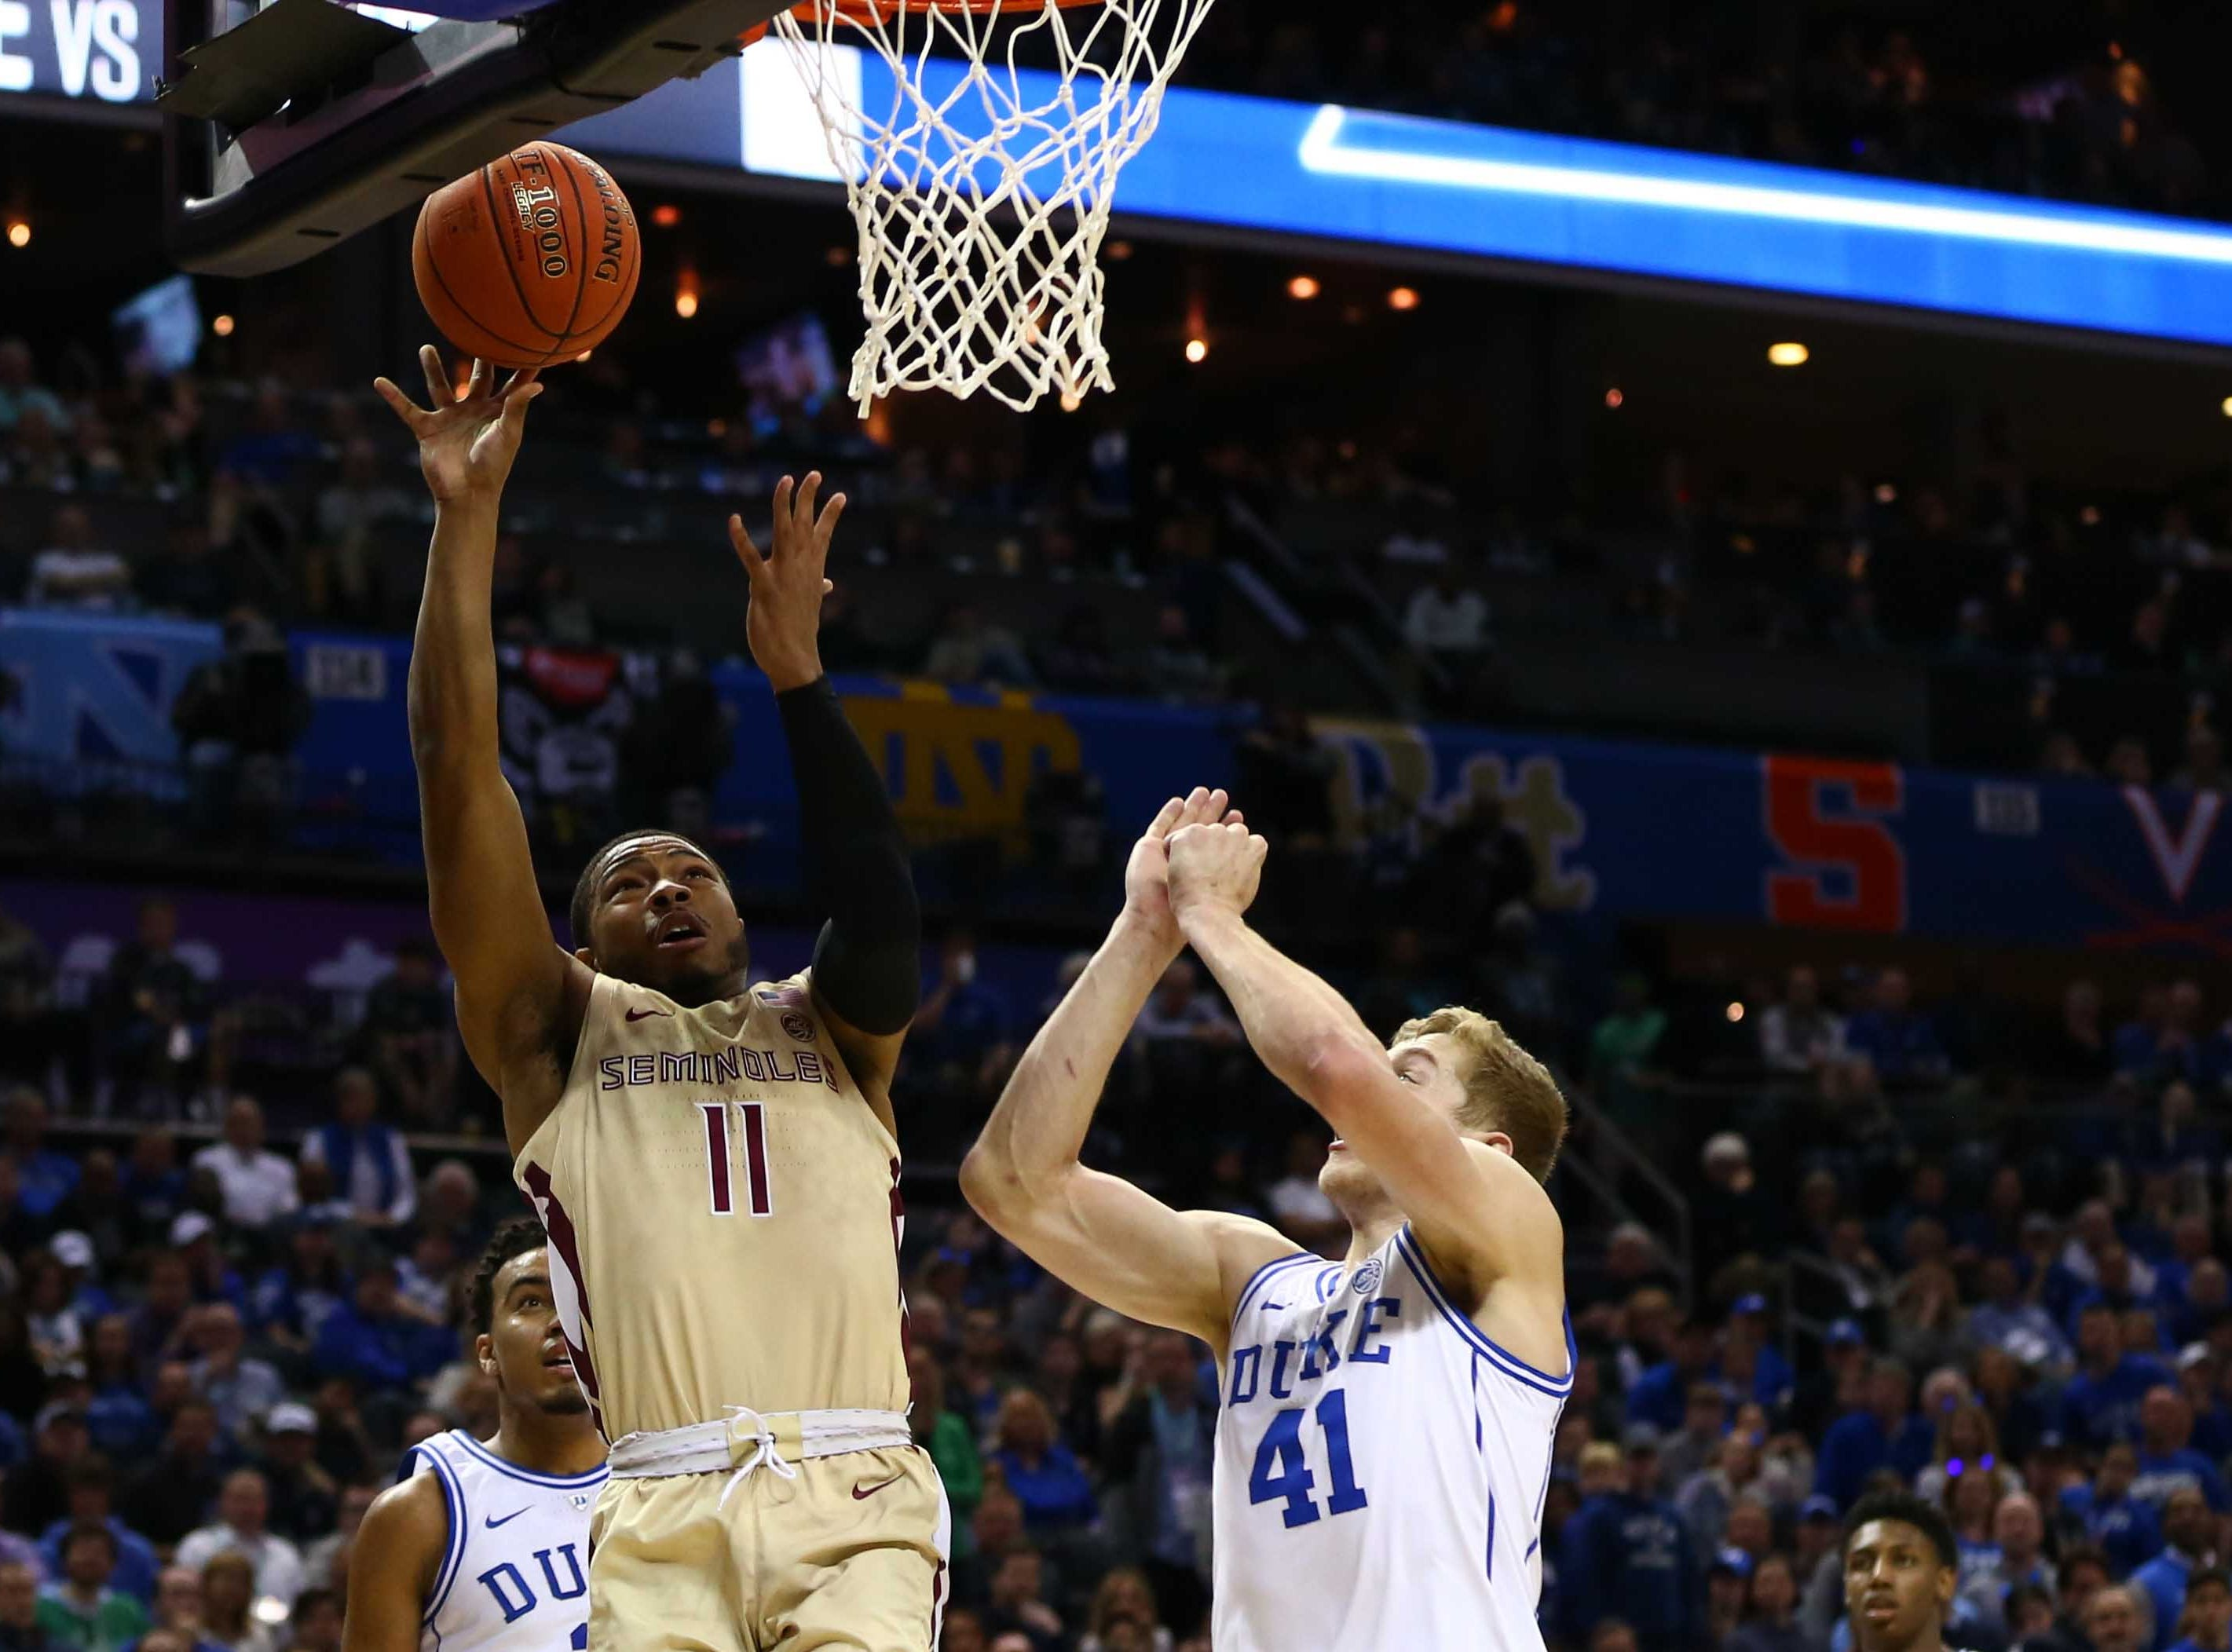 Mar 16, 2019; Charlotte, NC, USA; Florida State Seminoles guard David Nichols (11) shoots the ball against Duke Blue Devils forward Jack White (41) in the first half in the ACC conference tournament at Spectrum Center. Mandatory Credit: Jeremy Brevard-USA TODAY Sports